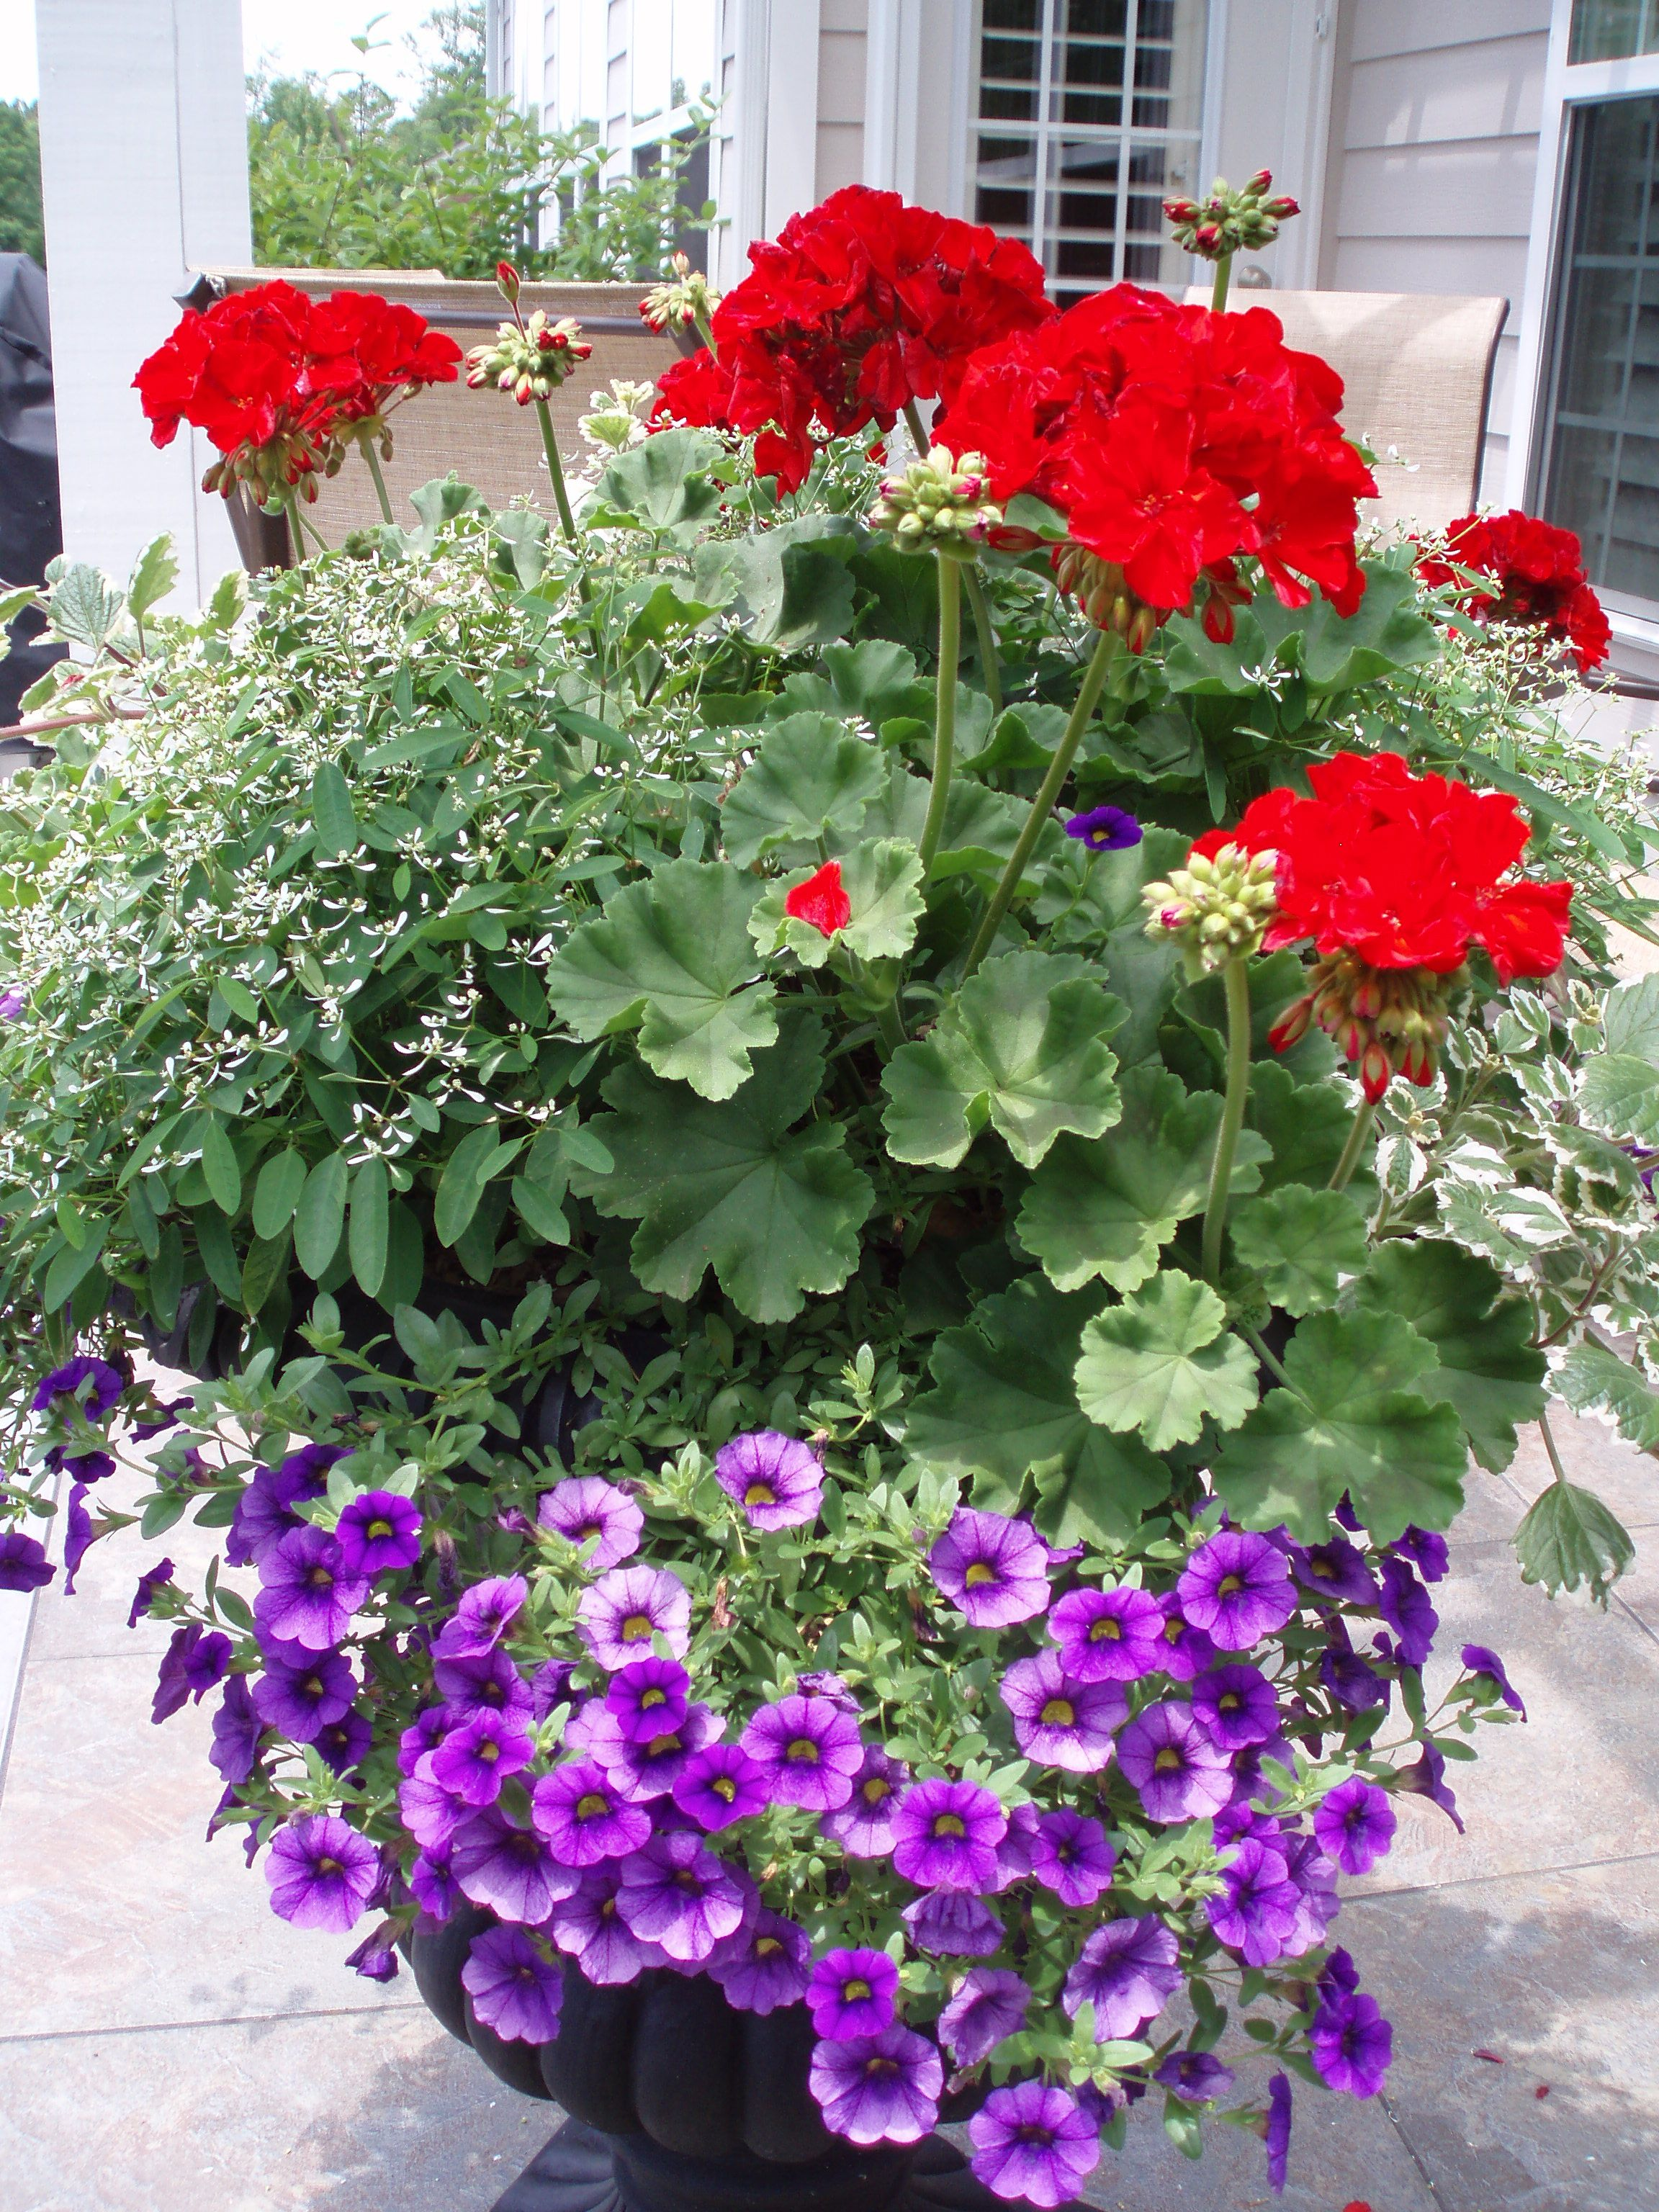 Who Says Geraniums Are Old Fashioned Flowers Here In This